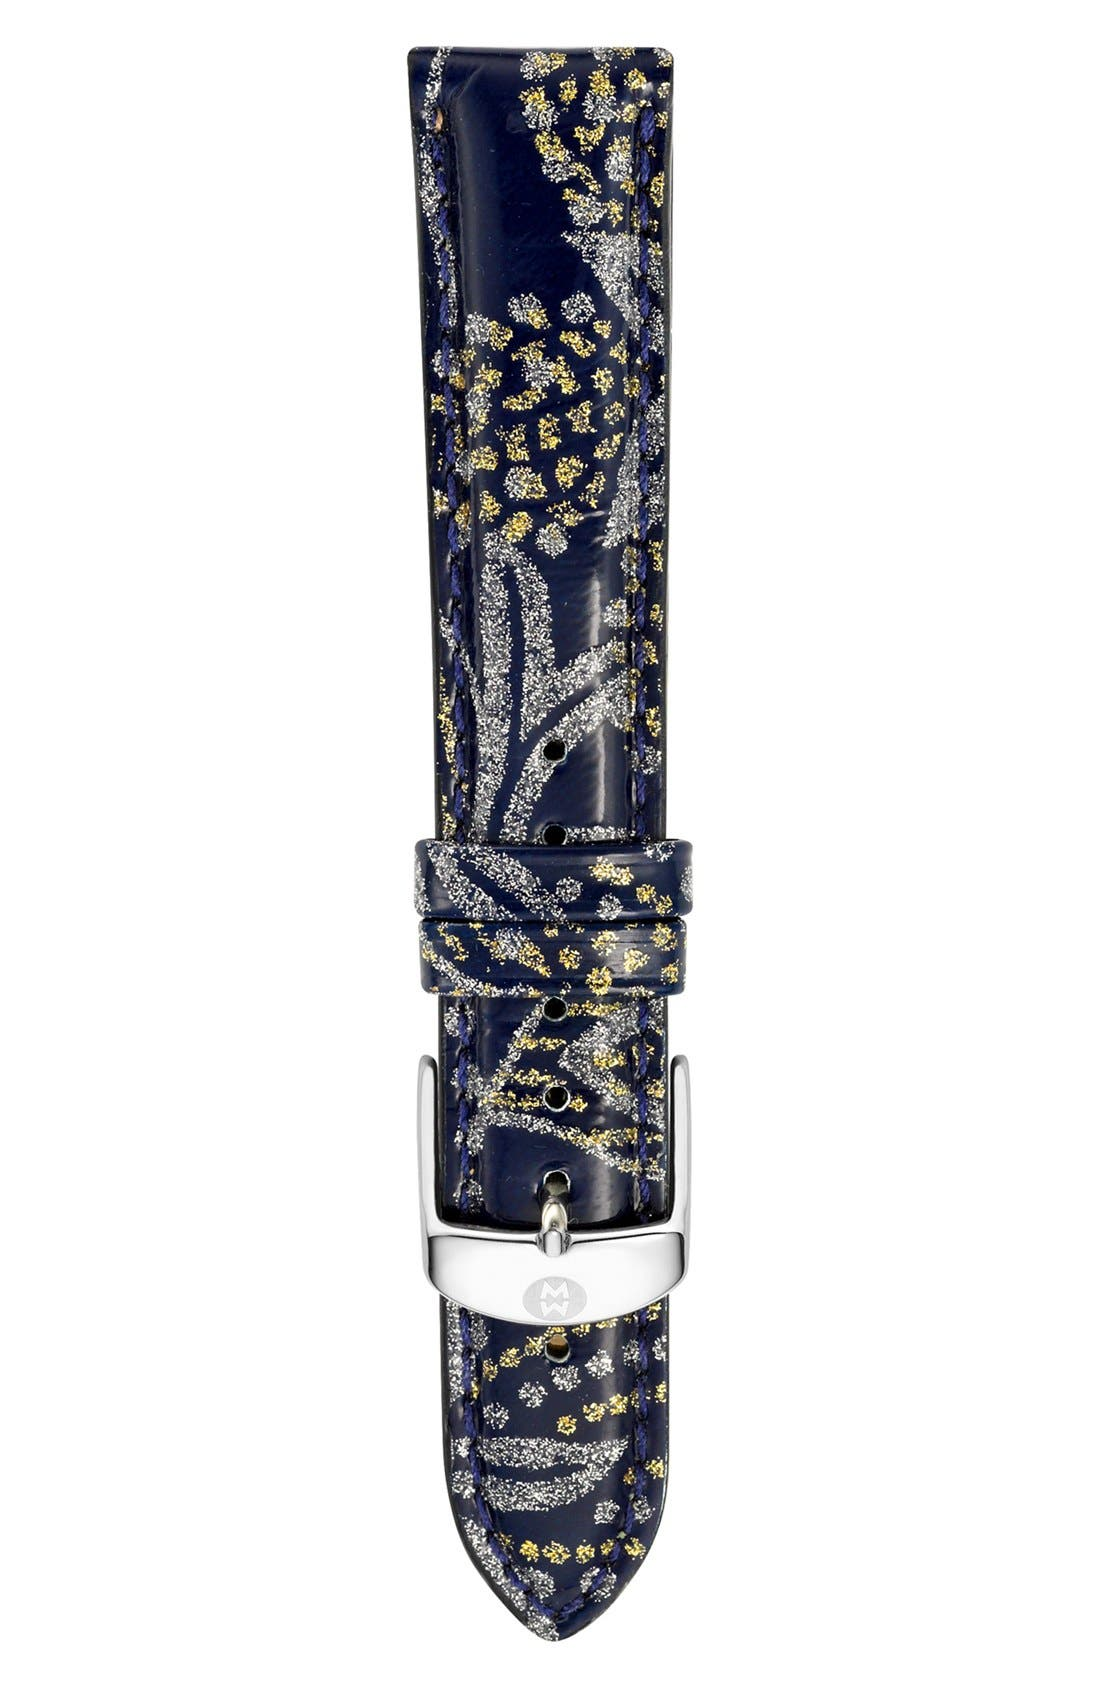 Alternate Image 1 Selected - MICHELE 18mm Paisley Pattern Patent Leather Watch Strap